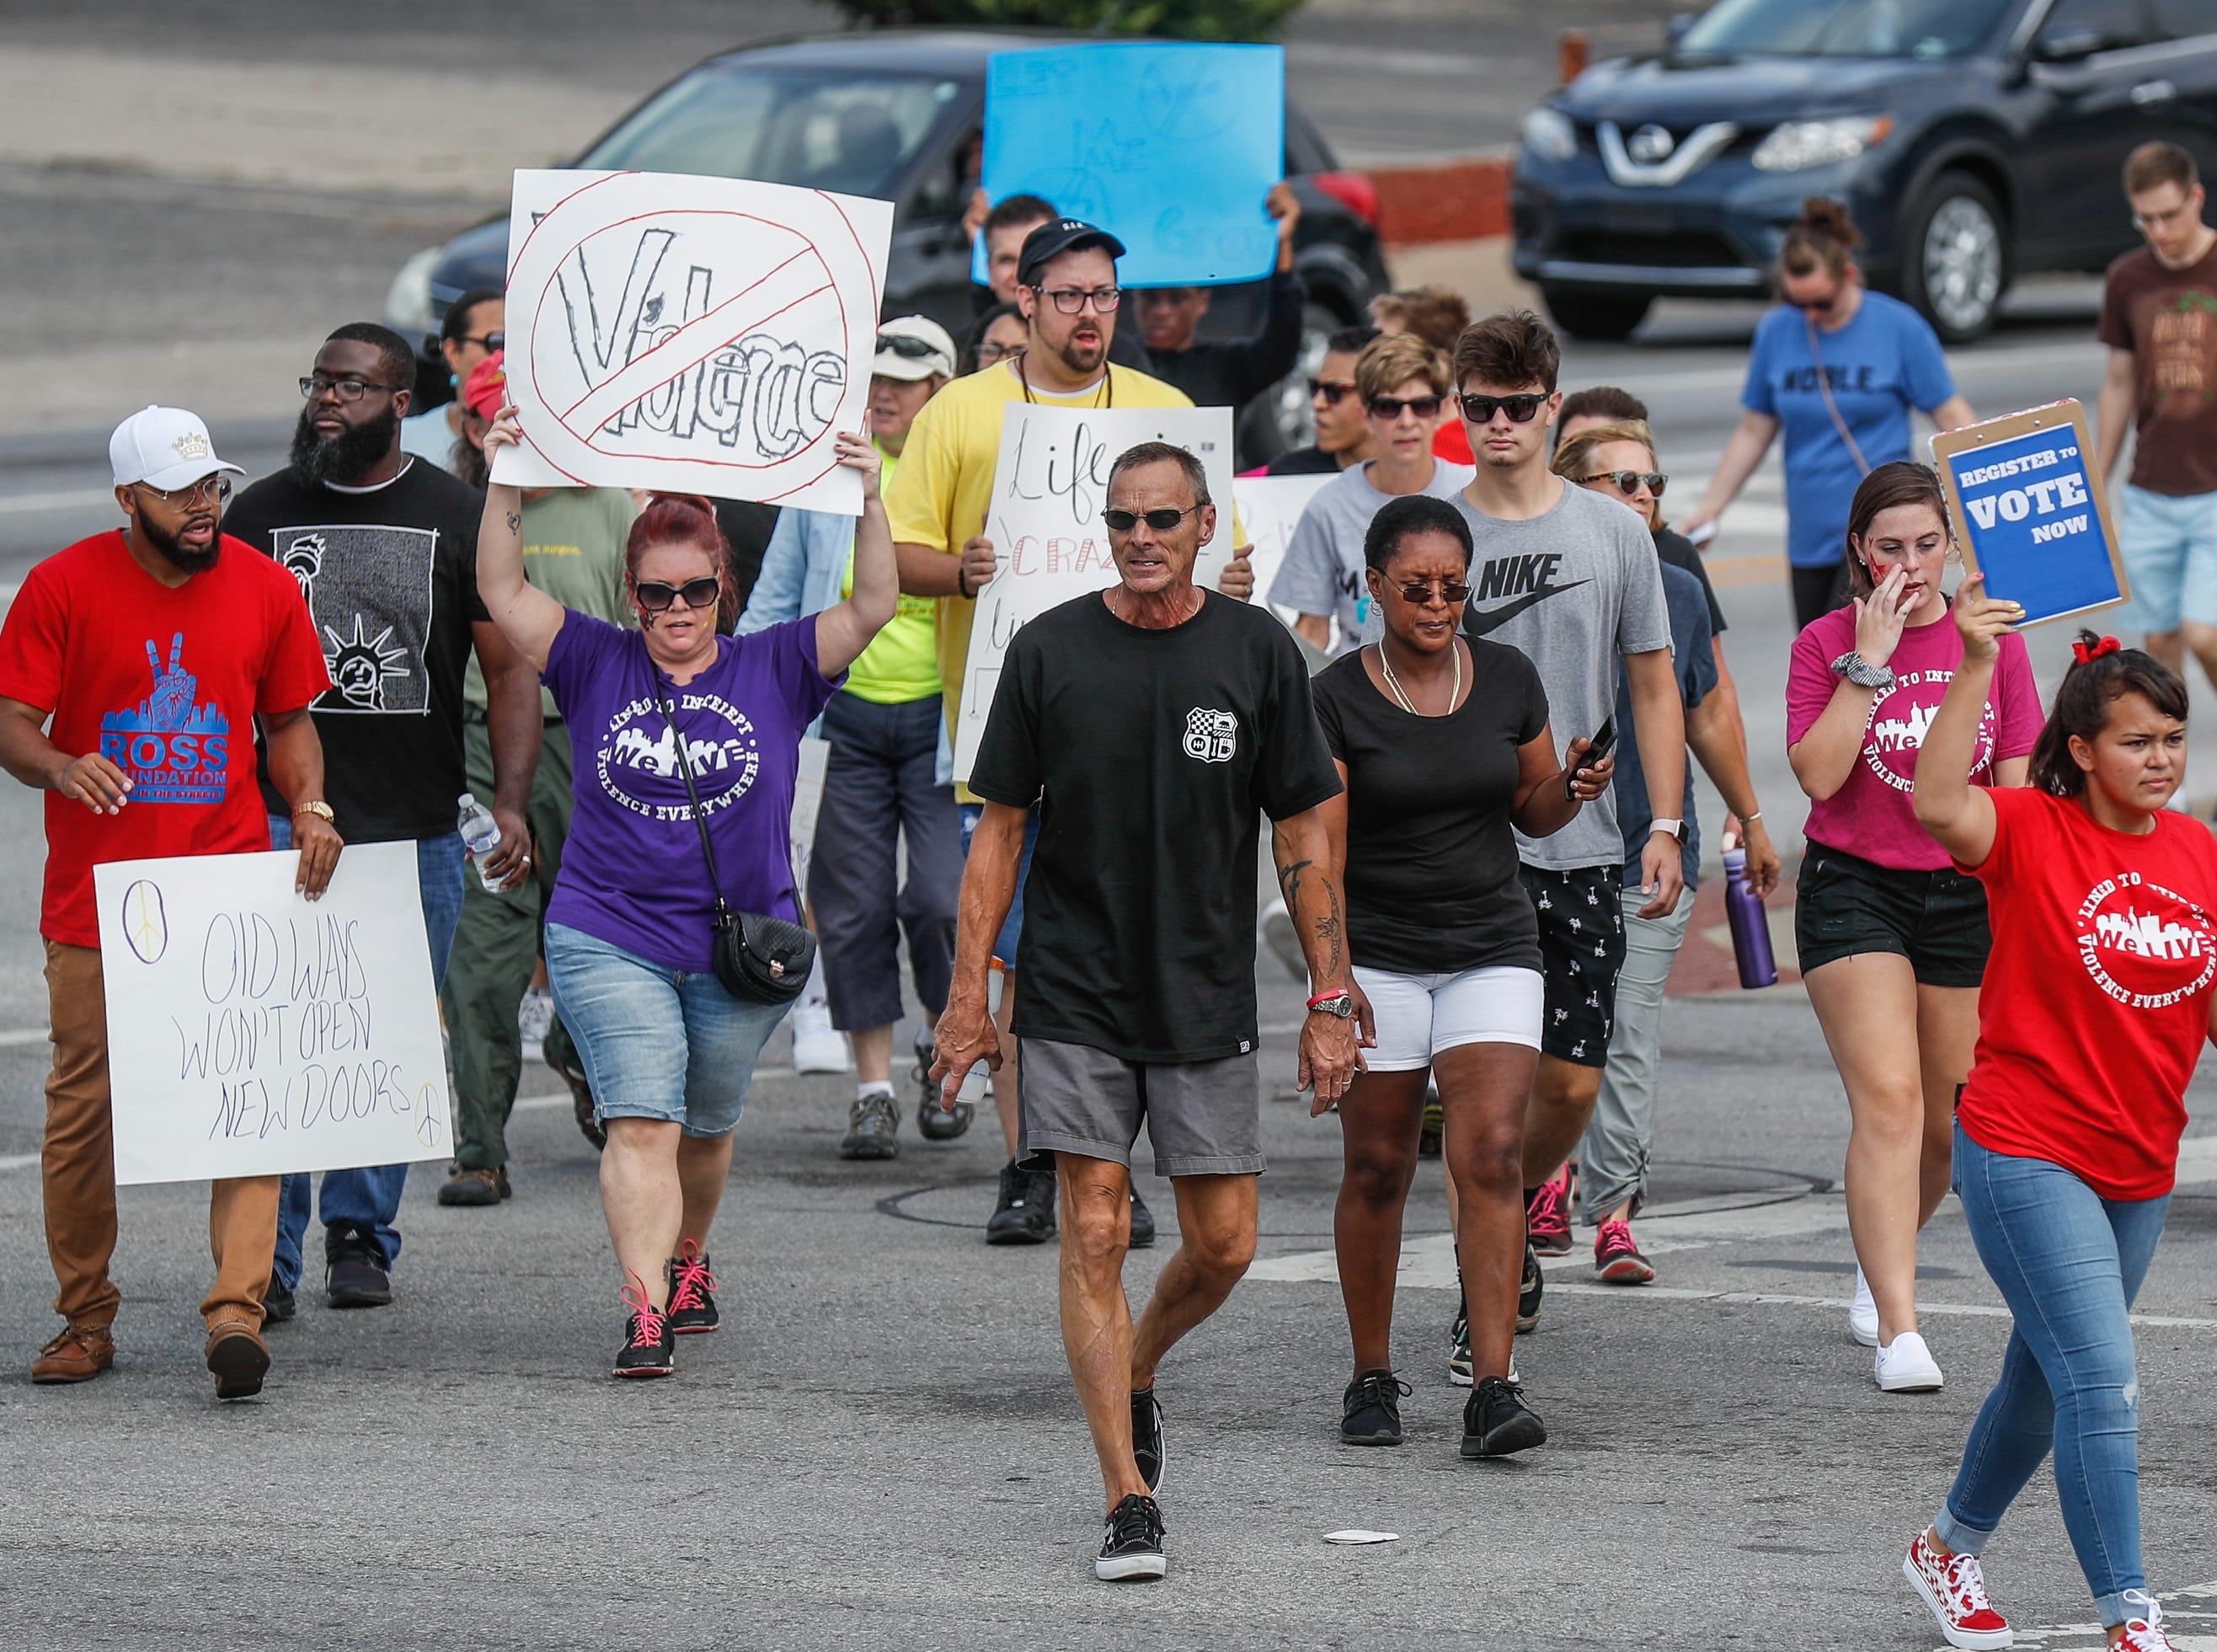 Members and supporters of 'We Live', gathered for their second annual Peace Walk and Community Day to end youth violence at Washington Park on Saturday, Aug. 11, 2018. 'We Live,' which stands for 'Linked To Intercept Violence' was started by students from Warren Central High School in Indianapolis.